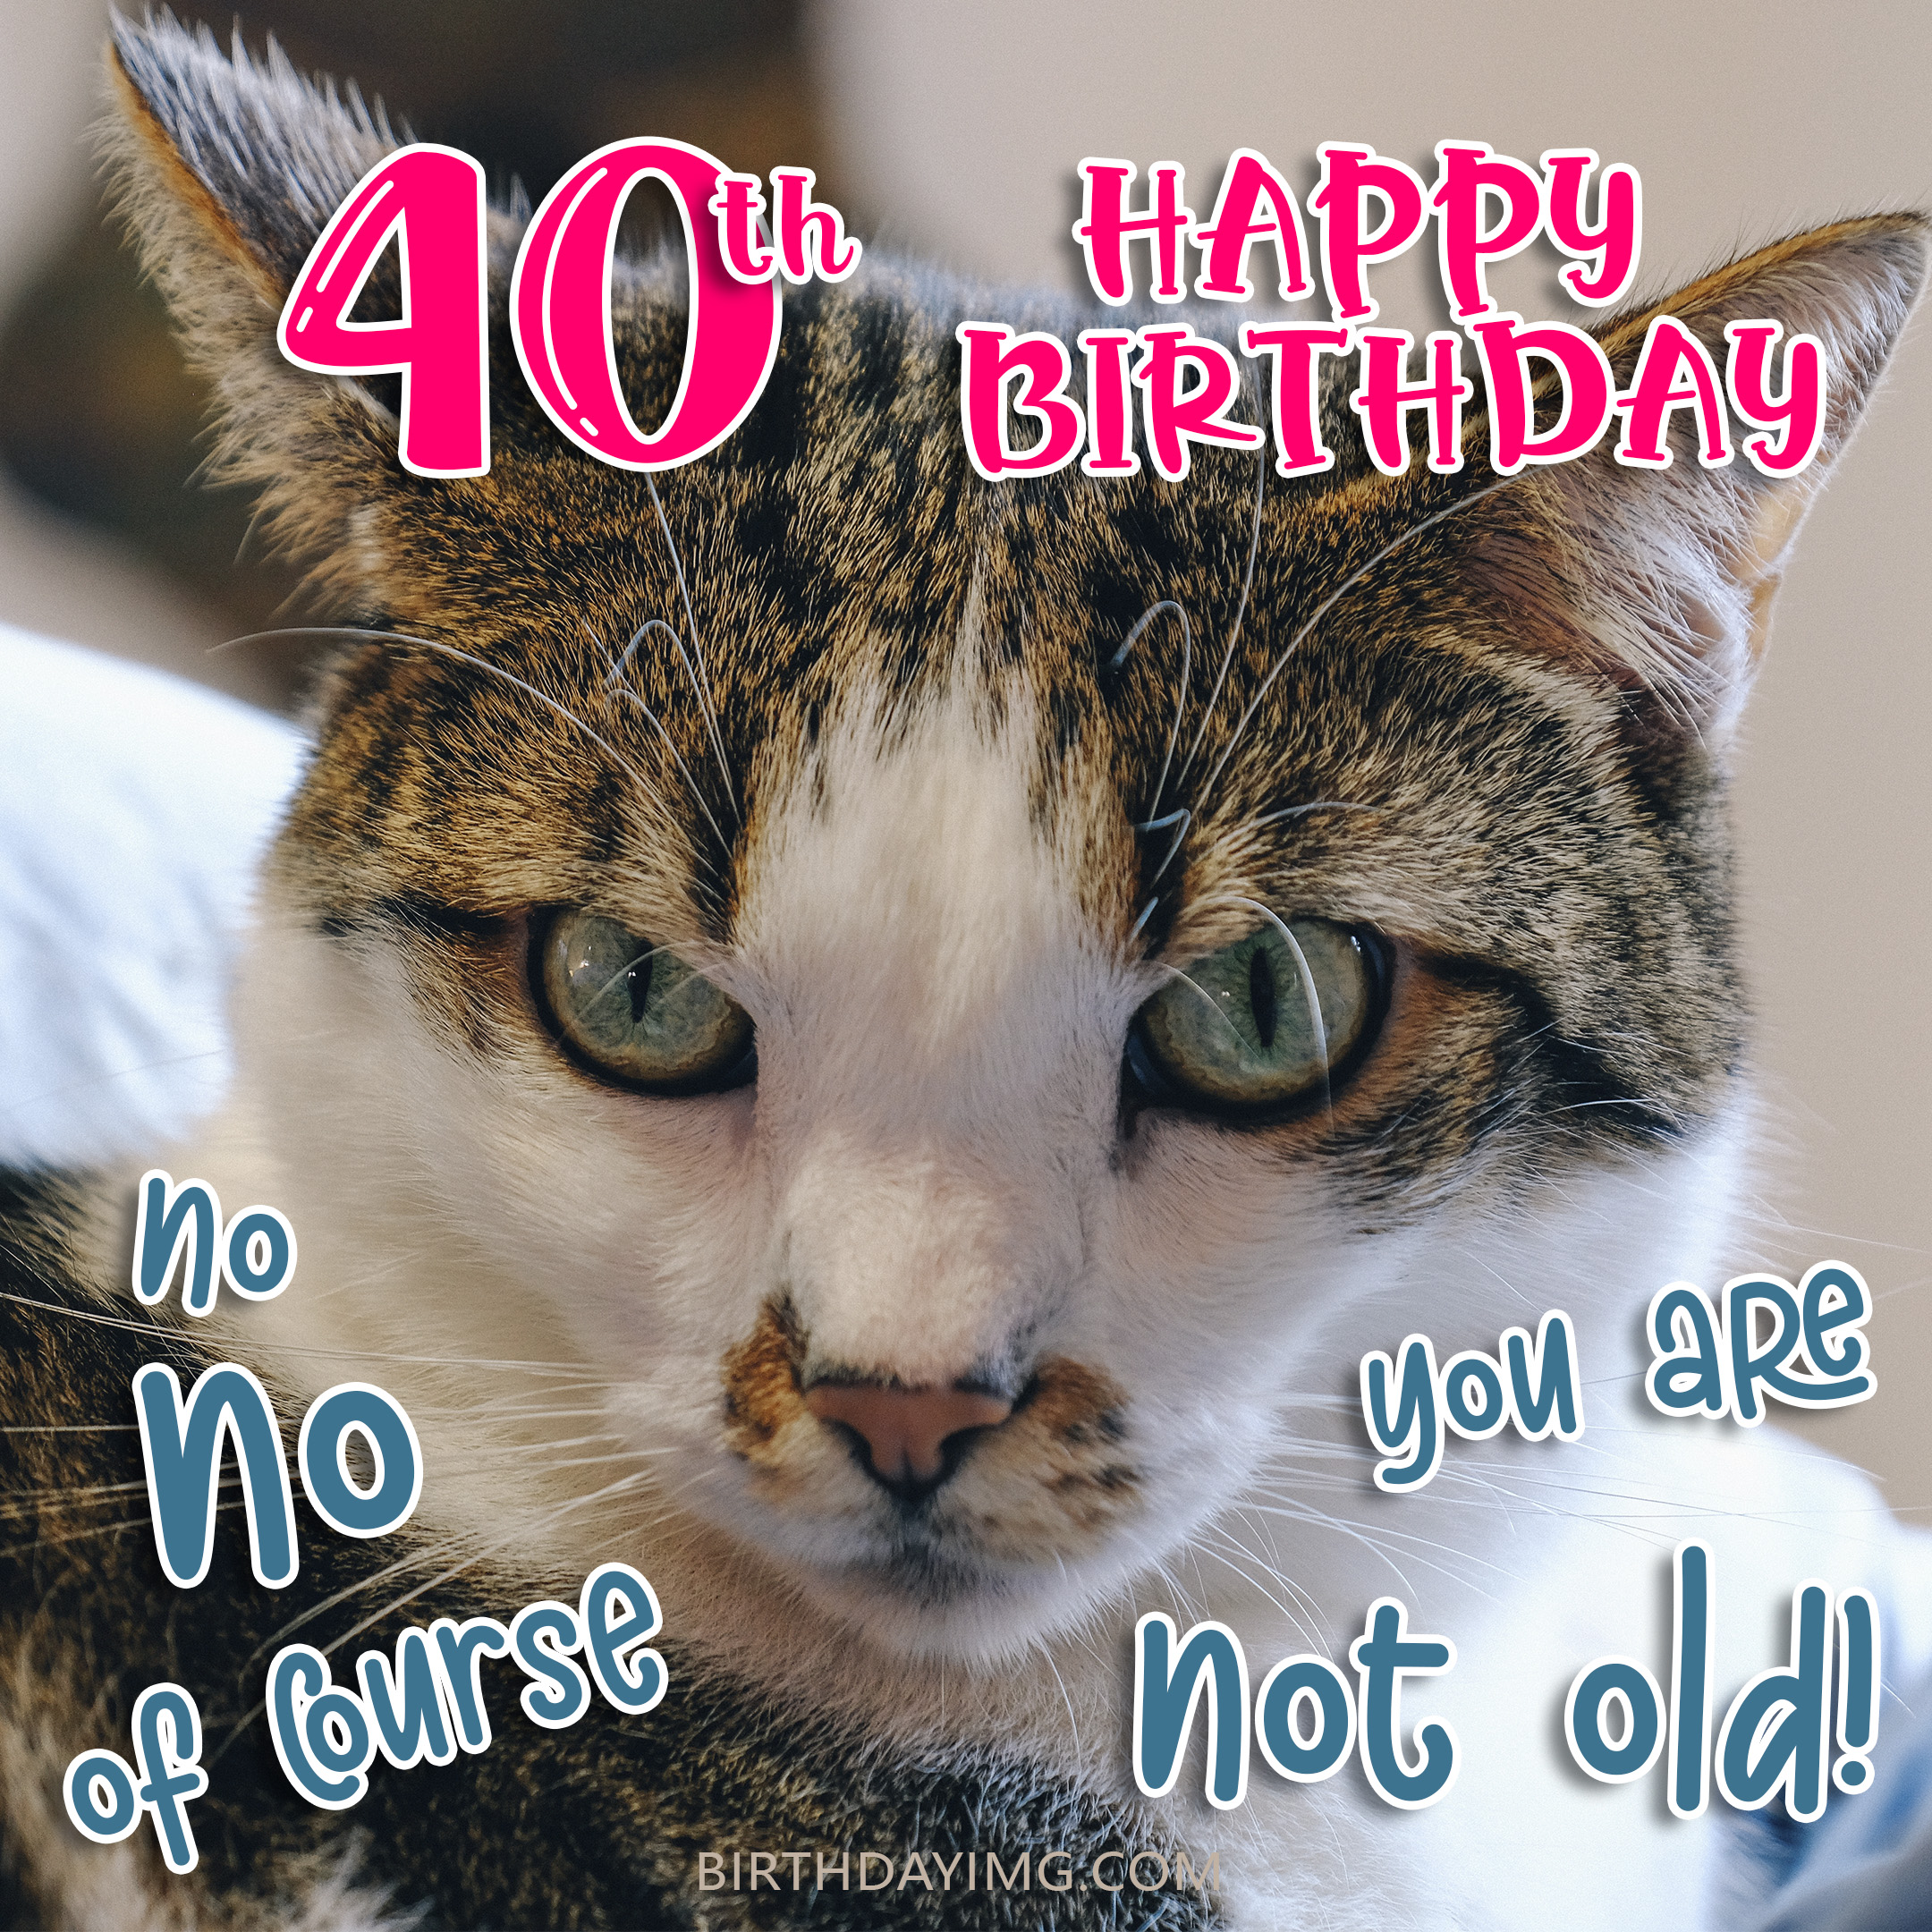 Free You Are Not Old 40th Years Happy Birthday Image With Cat - birthdayimg.com